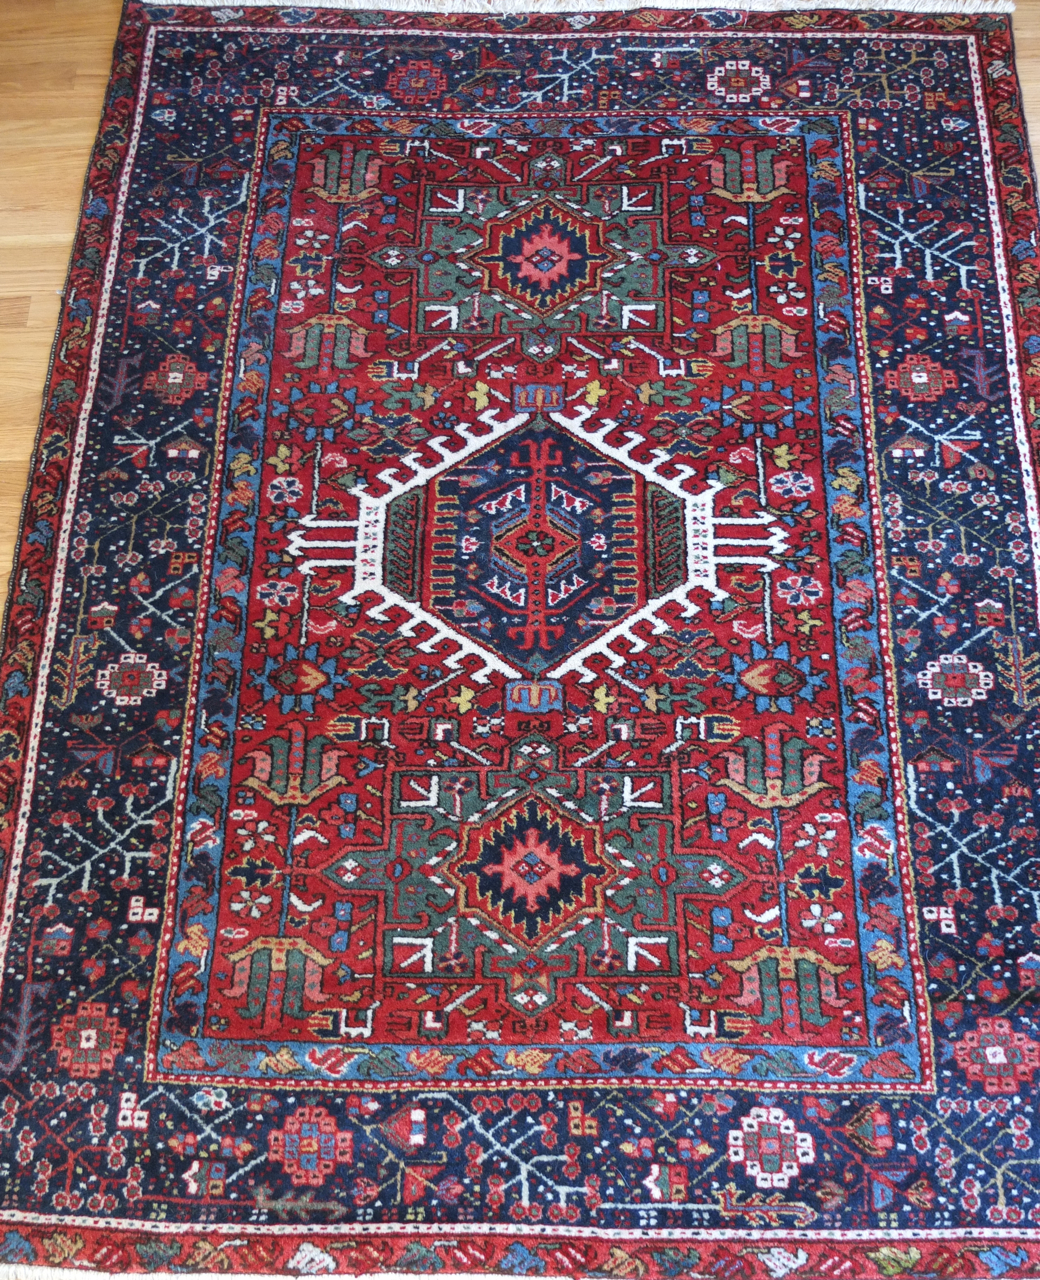 The Ultimate Rug And Carpet Thread